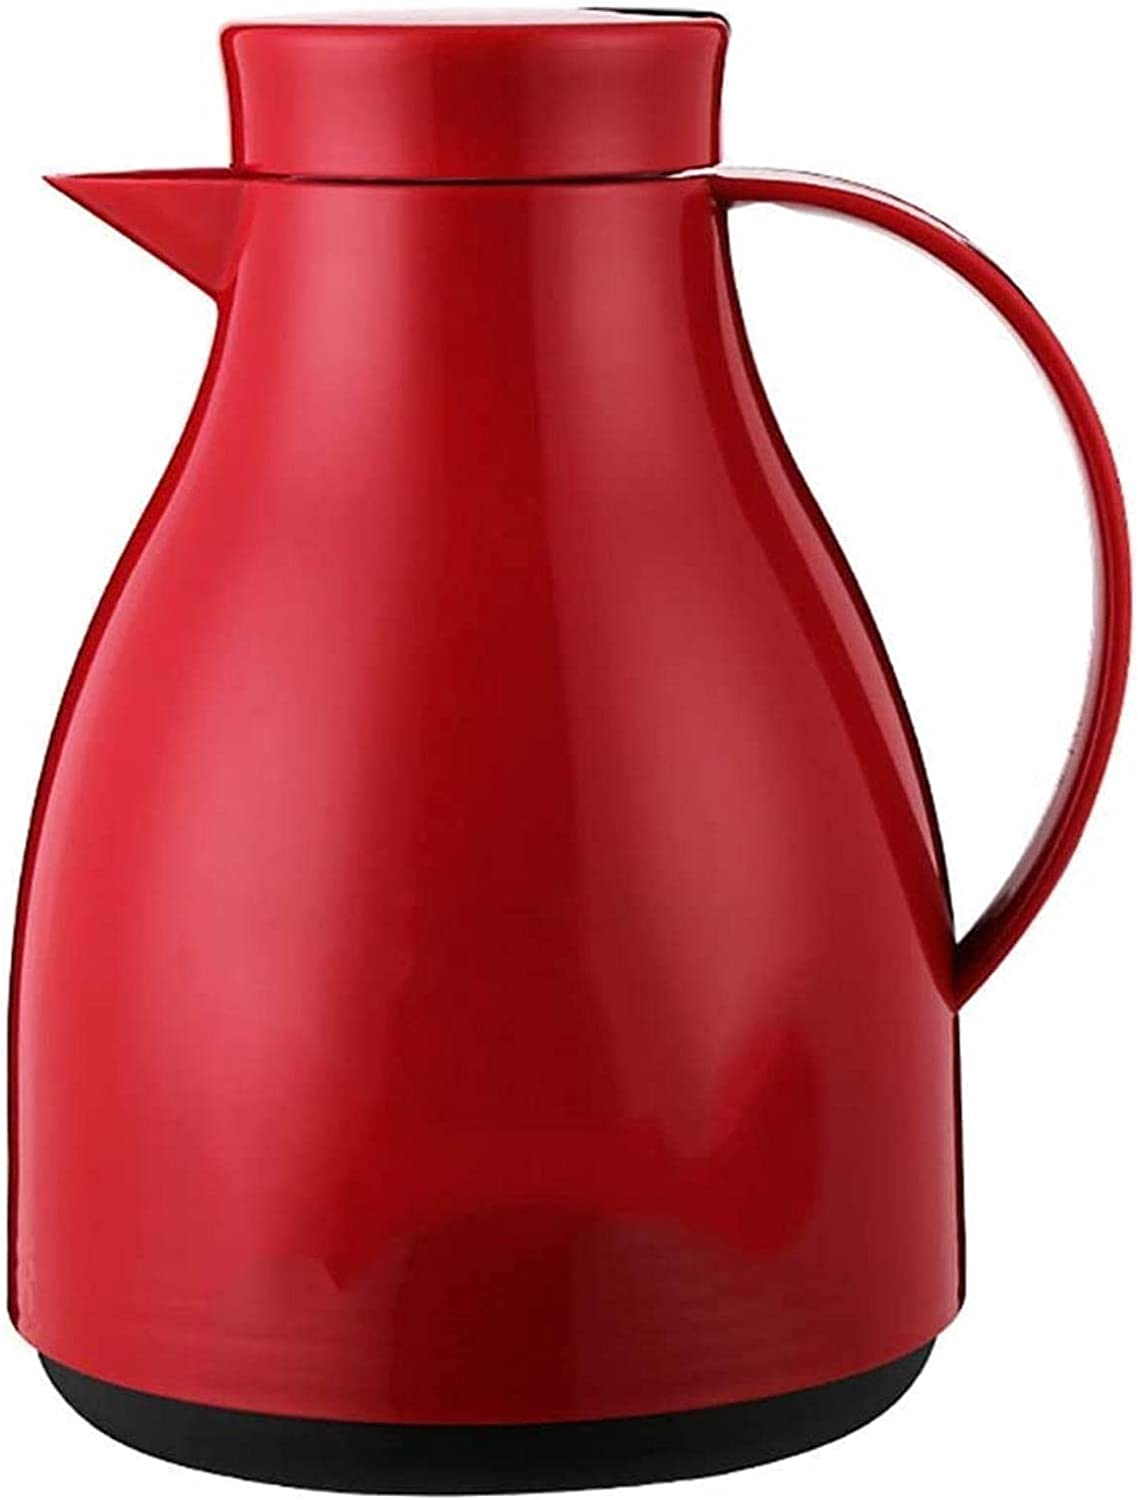 KJLY Water Cups Coffee Pots Large Home Capacity Limited Special Price Insulation Year-end annual account